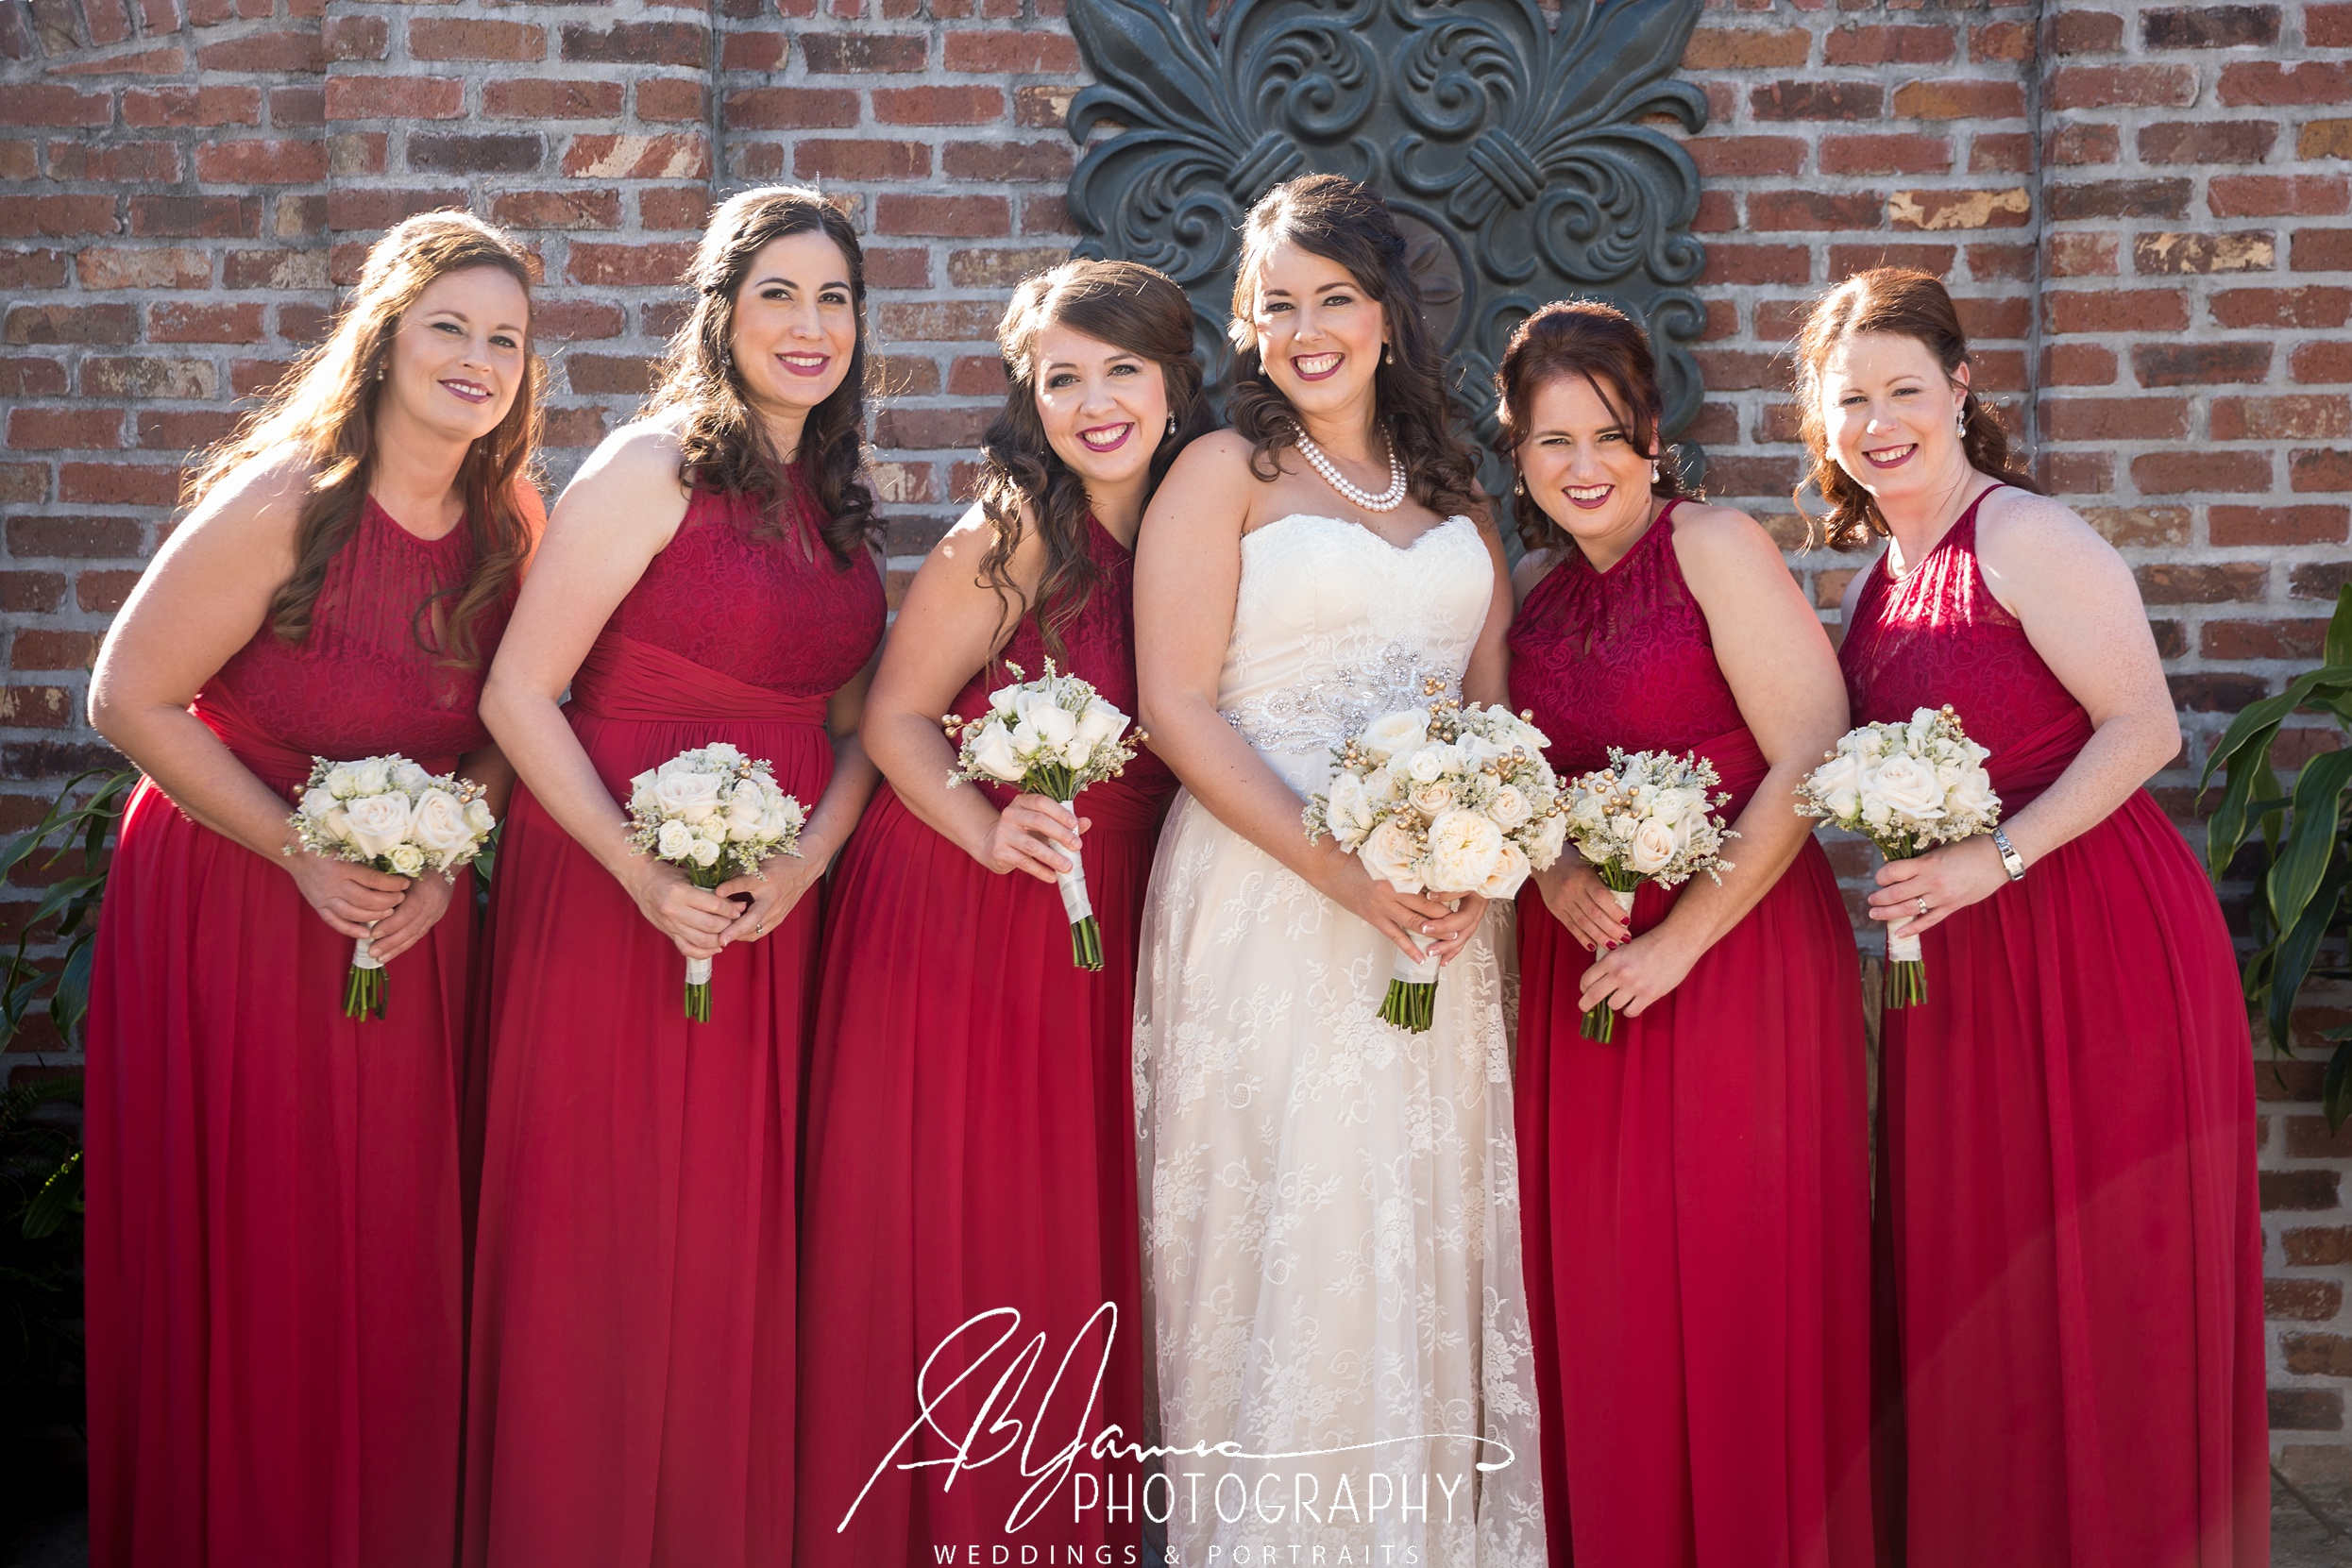 New Orleans, Baton Rouge, bride, groom, wedding, gonzales, baton rouge photographer bridesmaids bride groom wedding weddingparty gonzaleswedding batonrougewedding photographer weddingphotographer louisianaphotographer louisisanawedding batonrougewedding weddingphotography